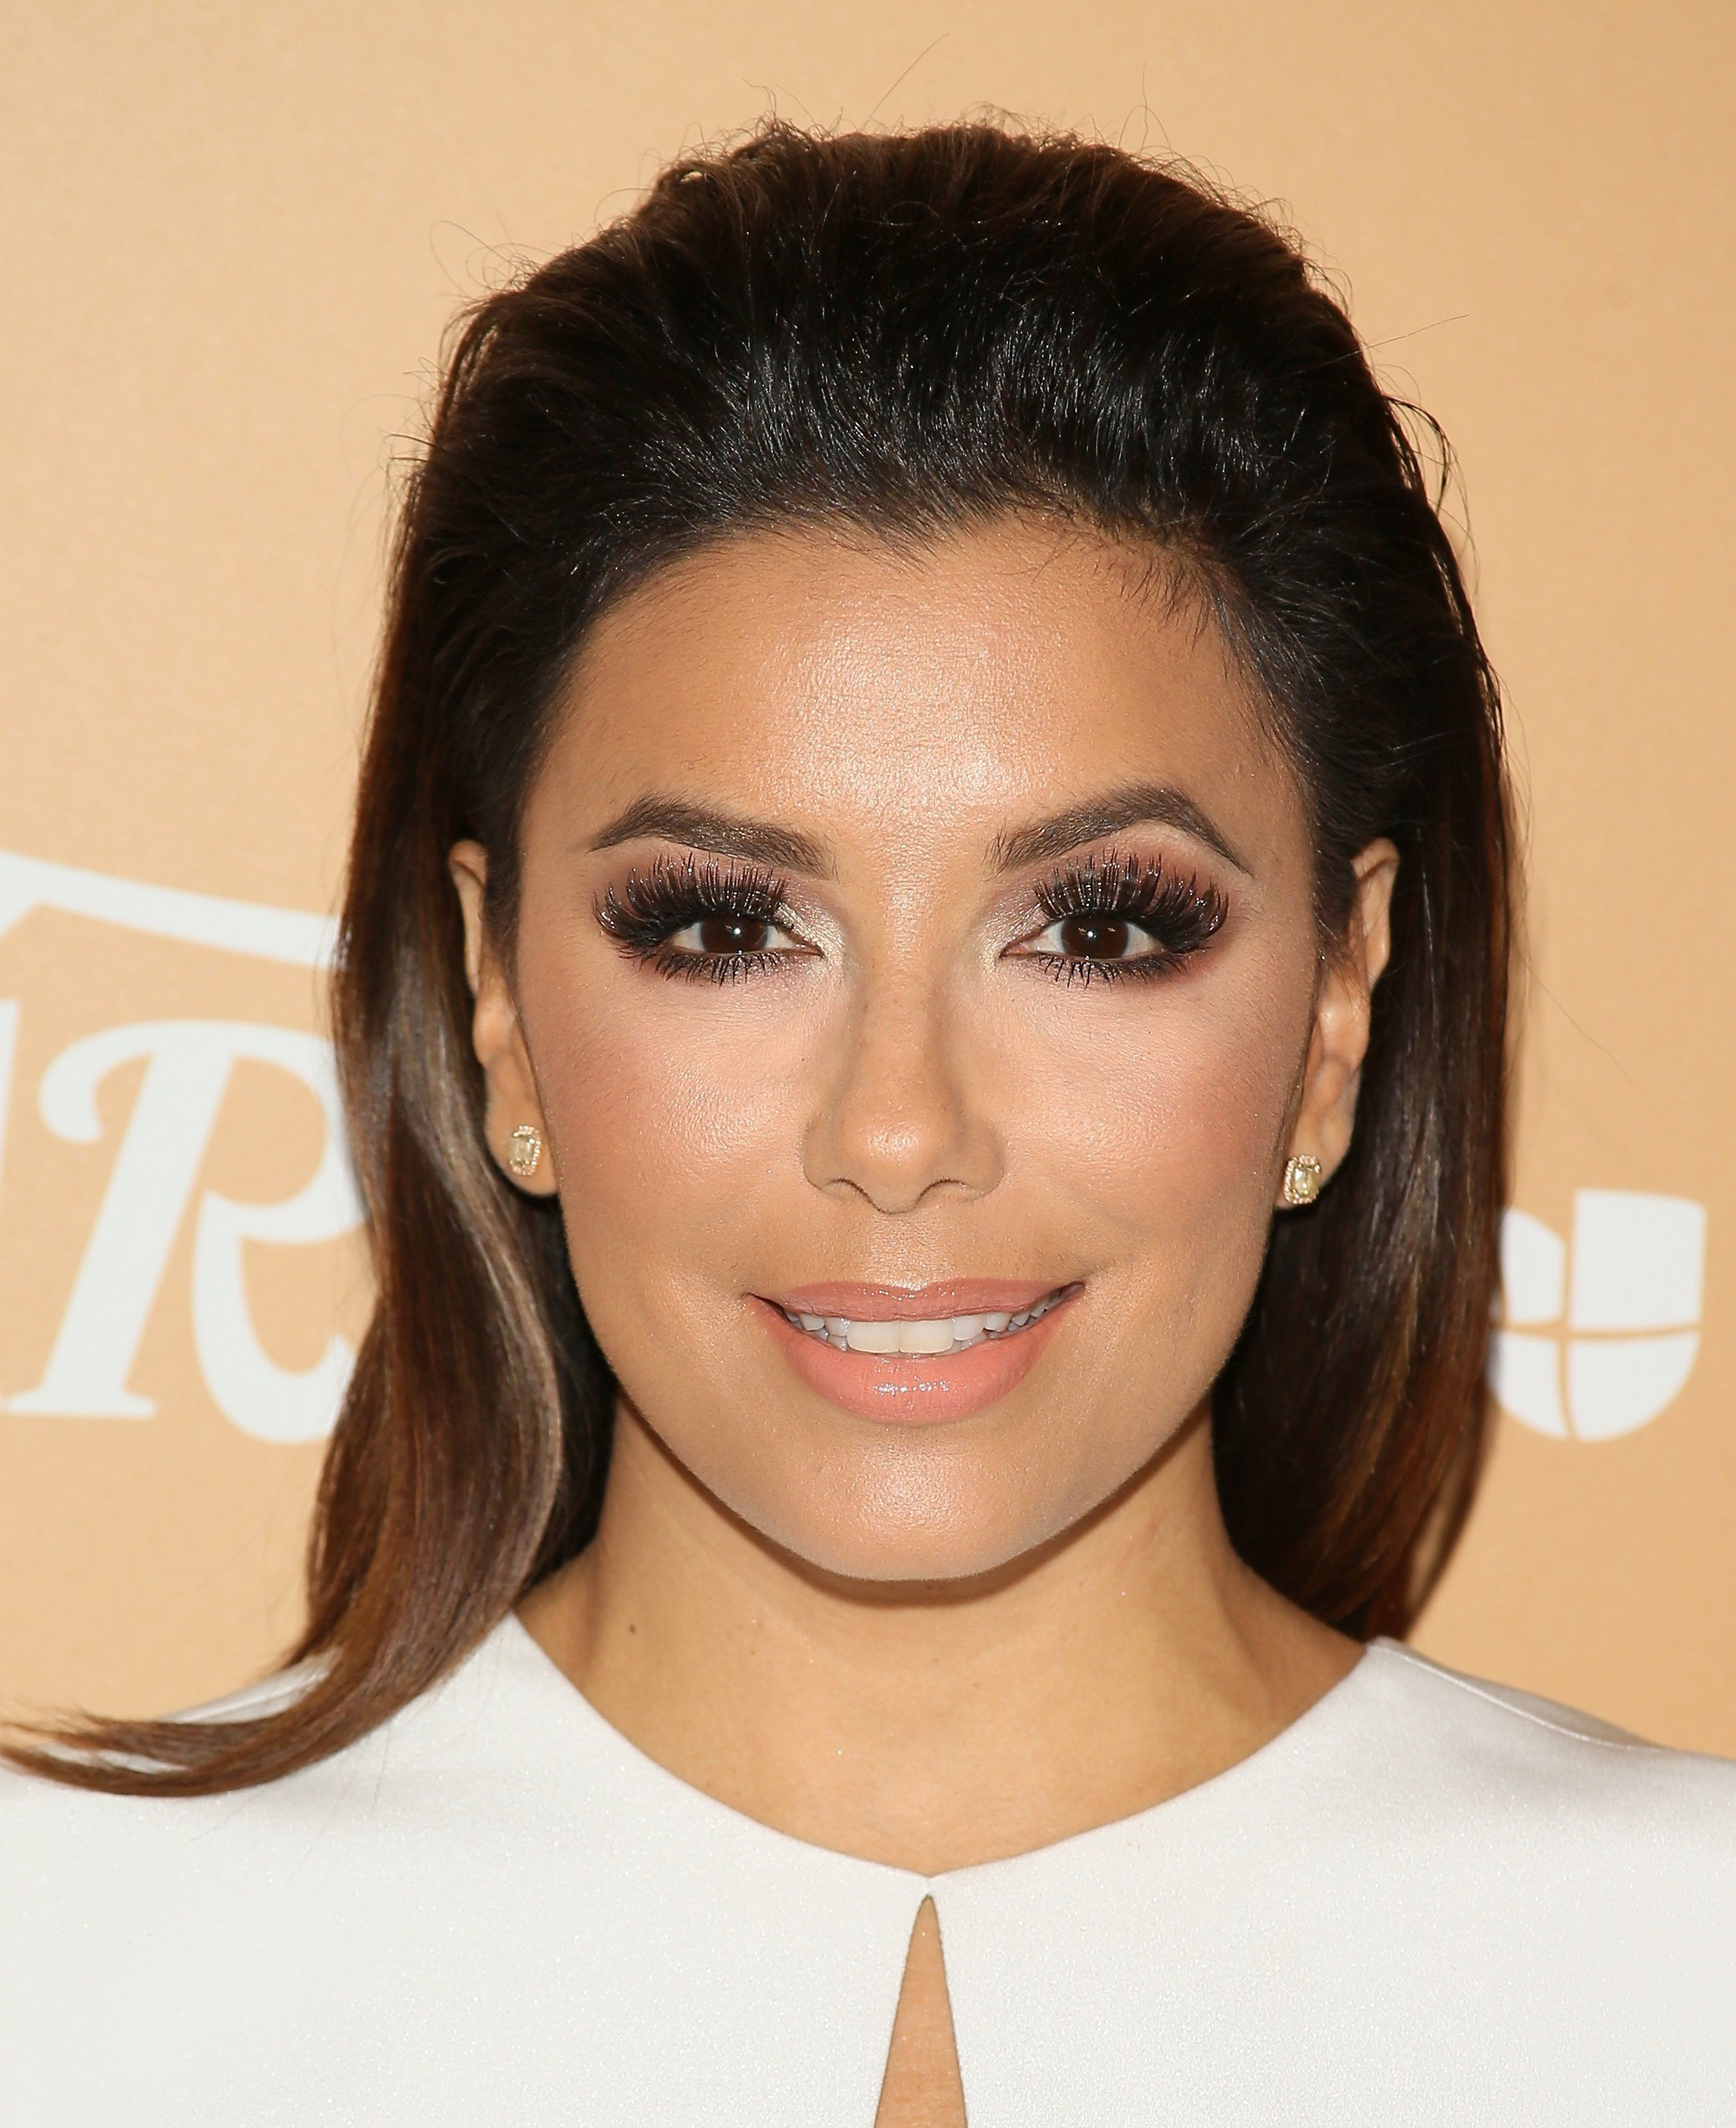 LOS ANGELES, CA - SEPTEMBER 30:  Eva Longoria attends Variety Latino's 10 Latinos to Watch held at Avalon Hollywood on September 30, 2015 in Los Angeles, California.  (Photo by JB Lacroix/WireImage)